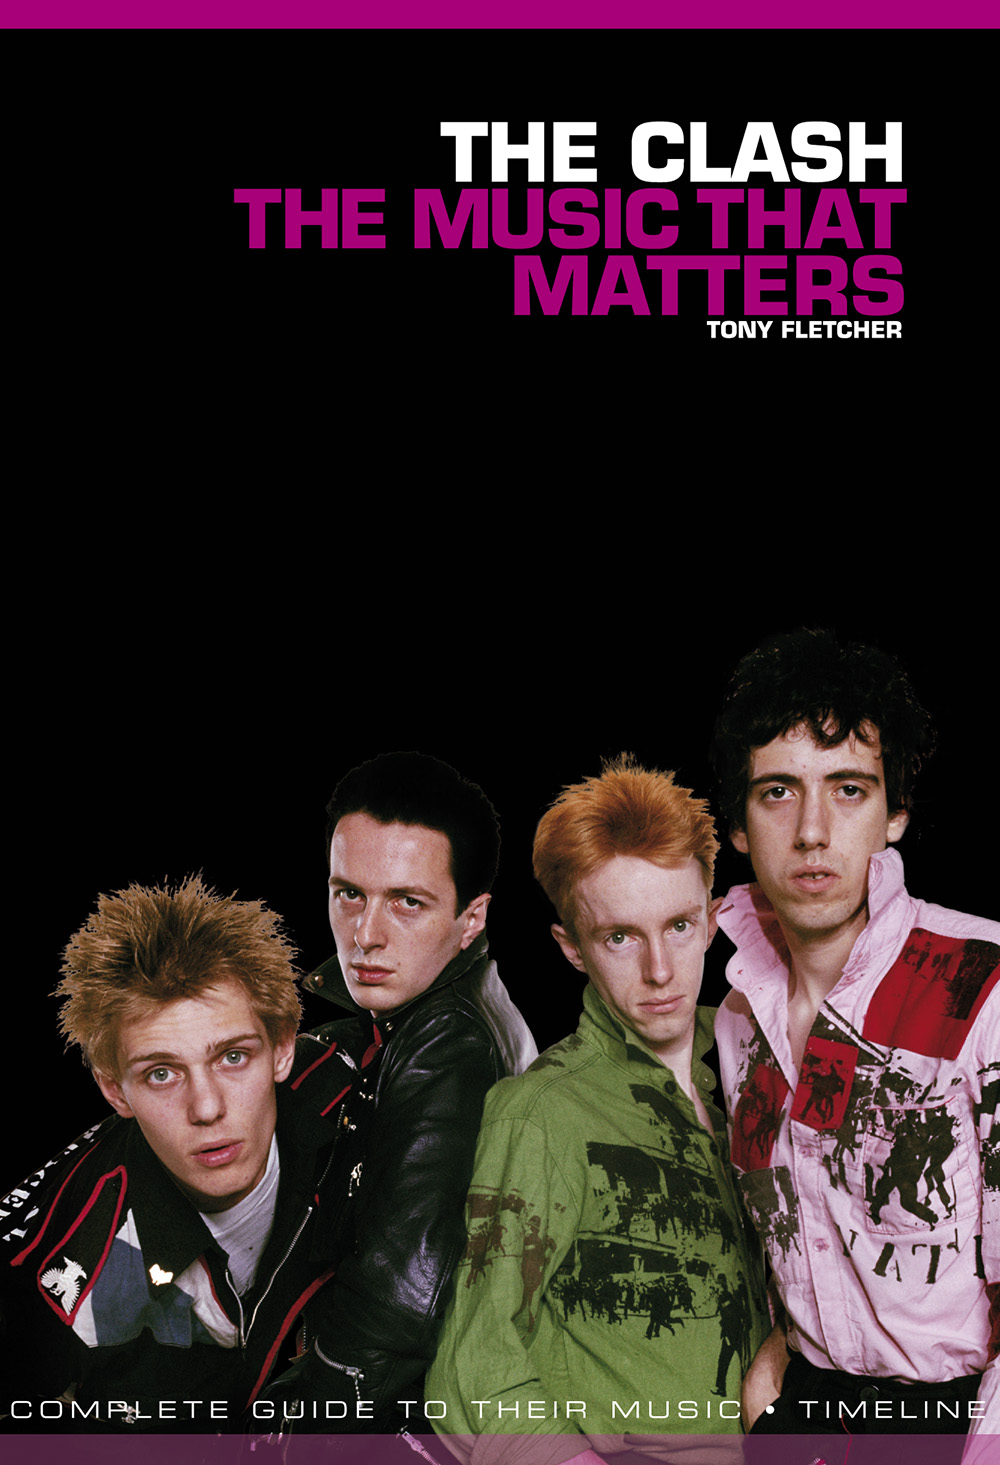 OP54417 The Clash Music That Matters Cover